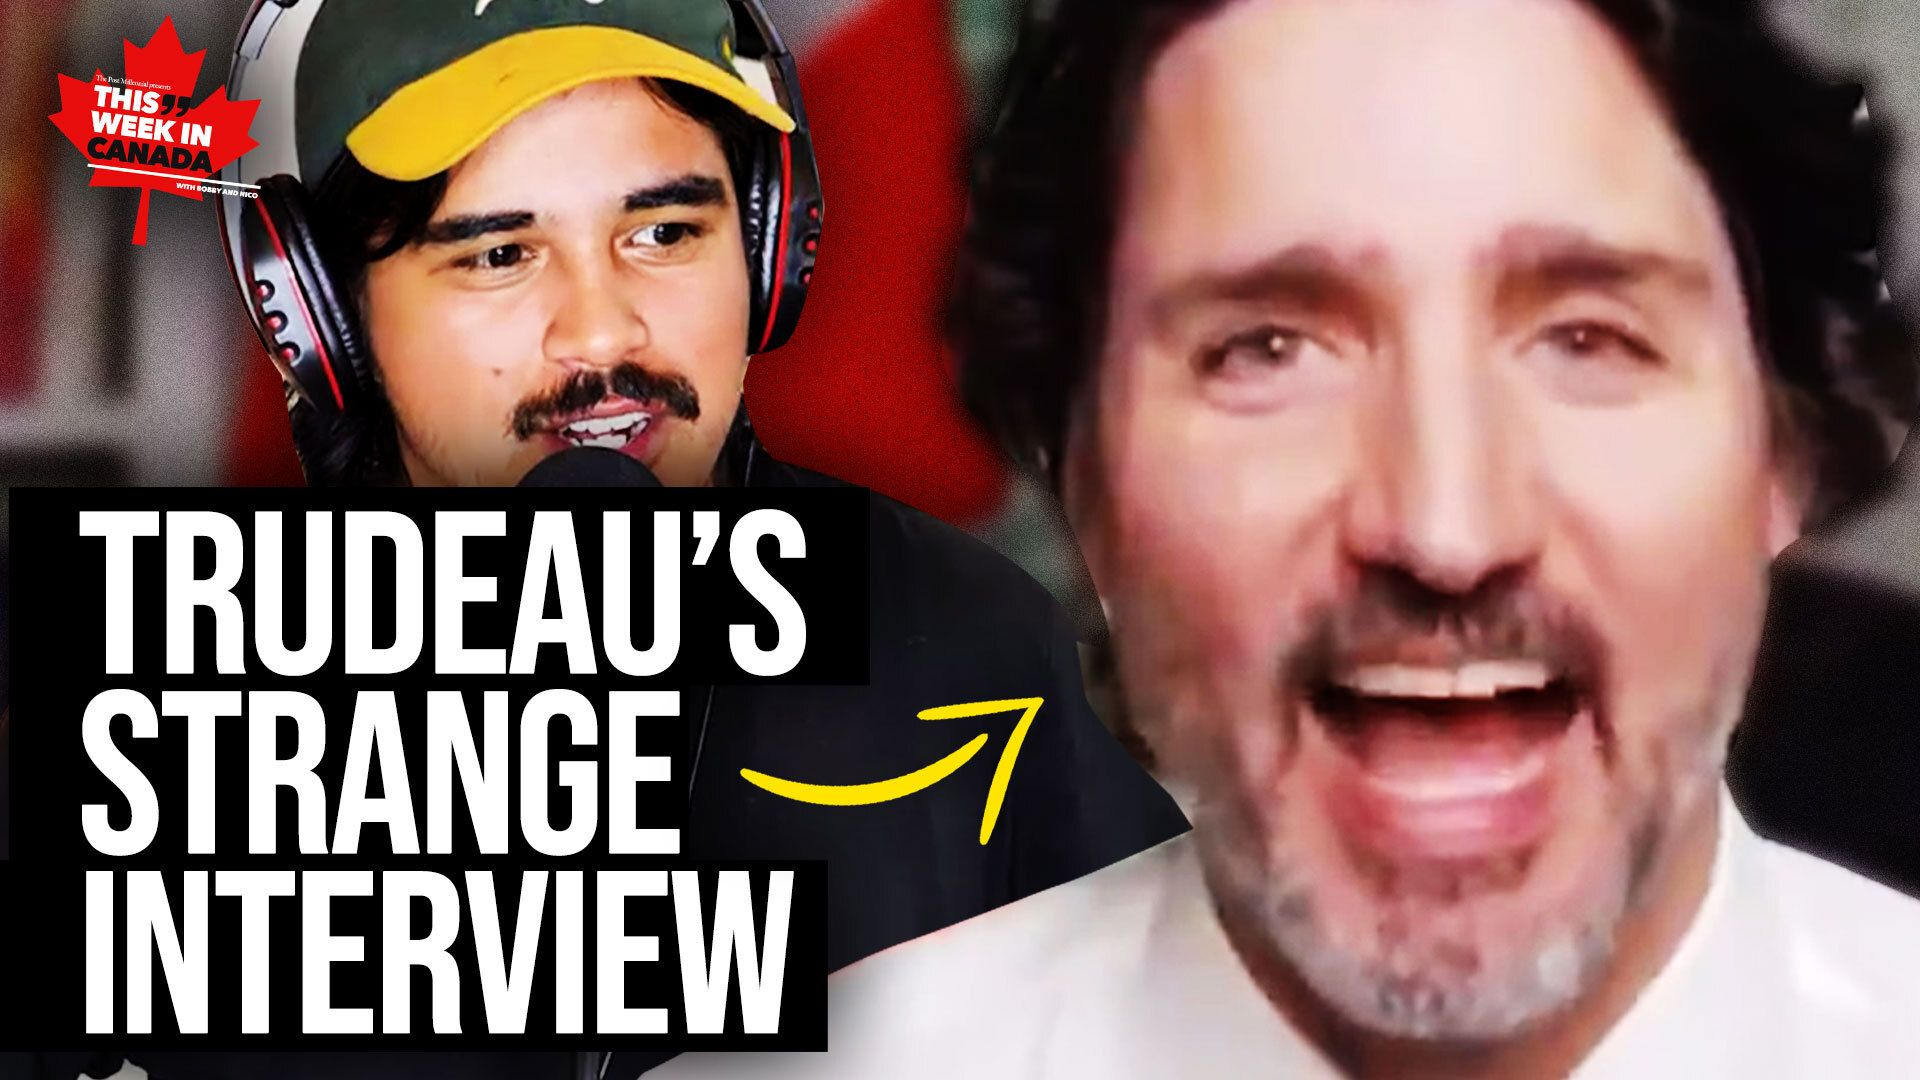 What's Going On With Justin Trudeau?